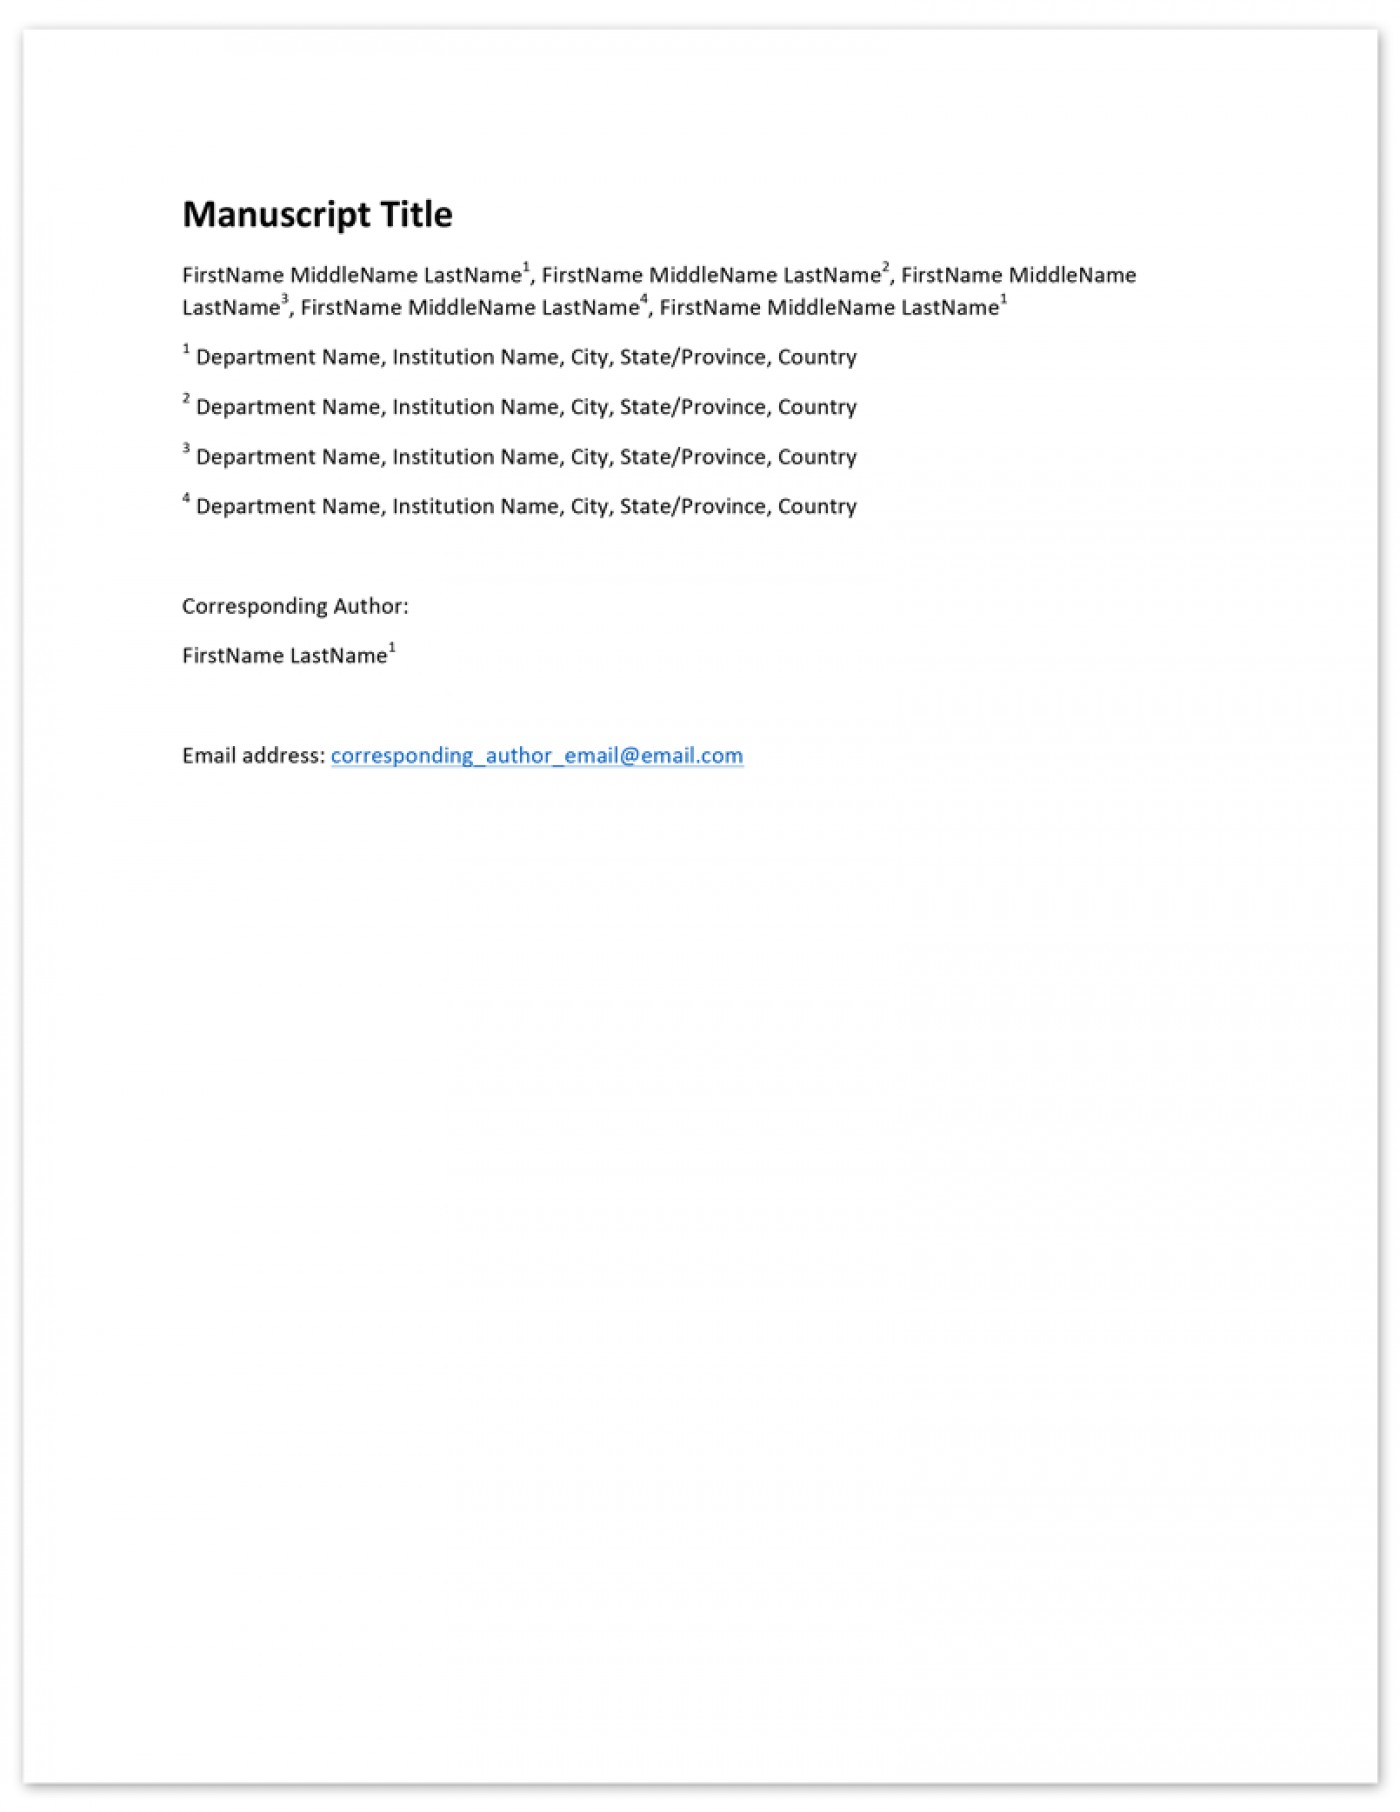 009 Author Cover Page Template V2 Citing Research Paper With Multiple Excellent Authors 1400